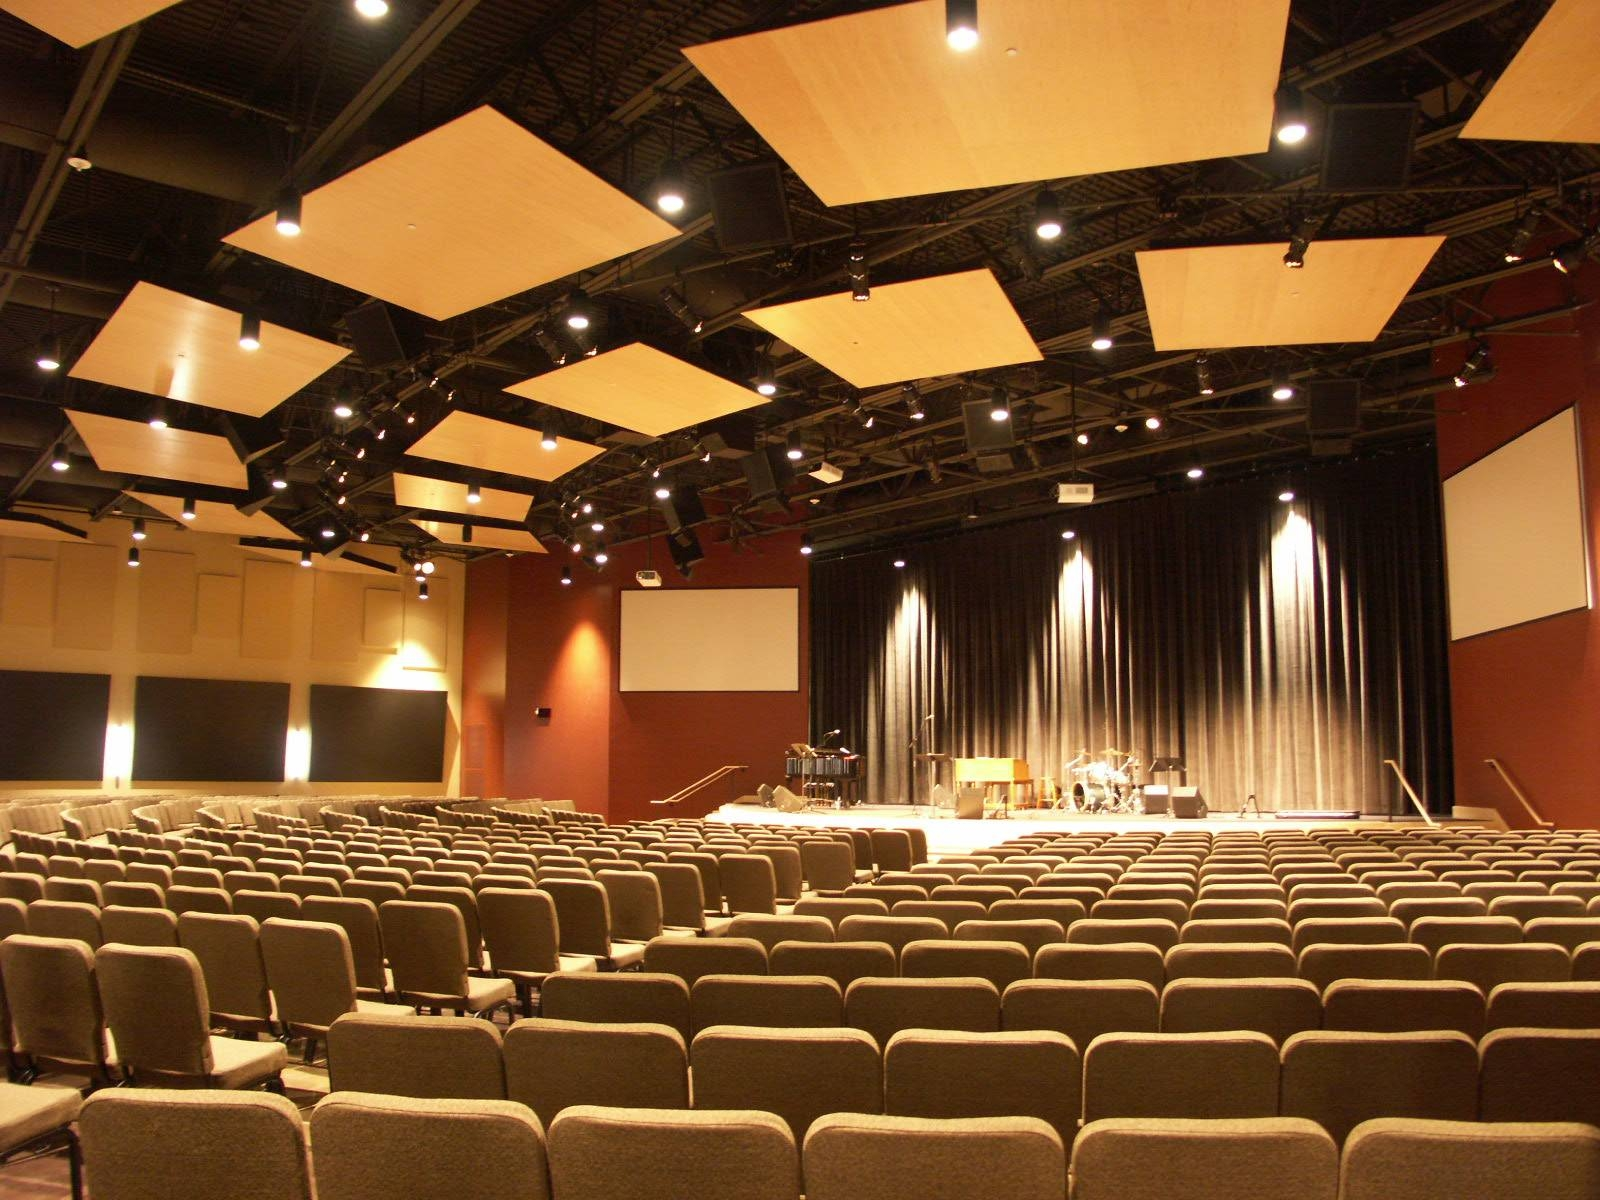 Features Light Decor : Church Worship Lighting Design , Church Pertaining To Church Pendant Lighting (View 7 of 15)